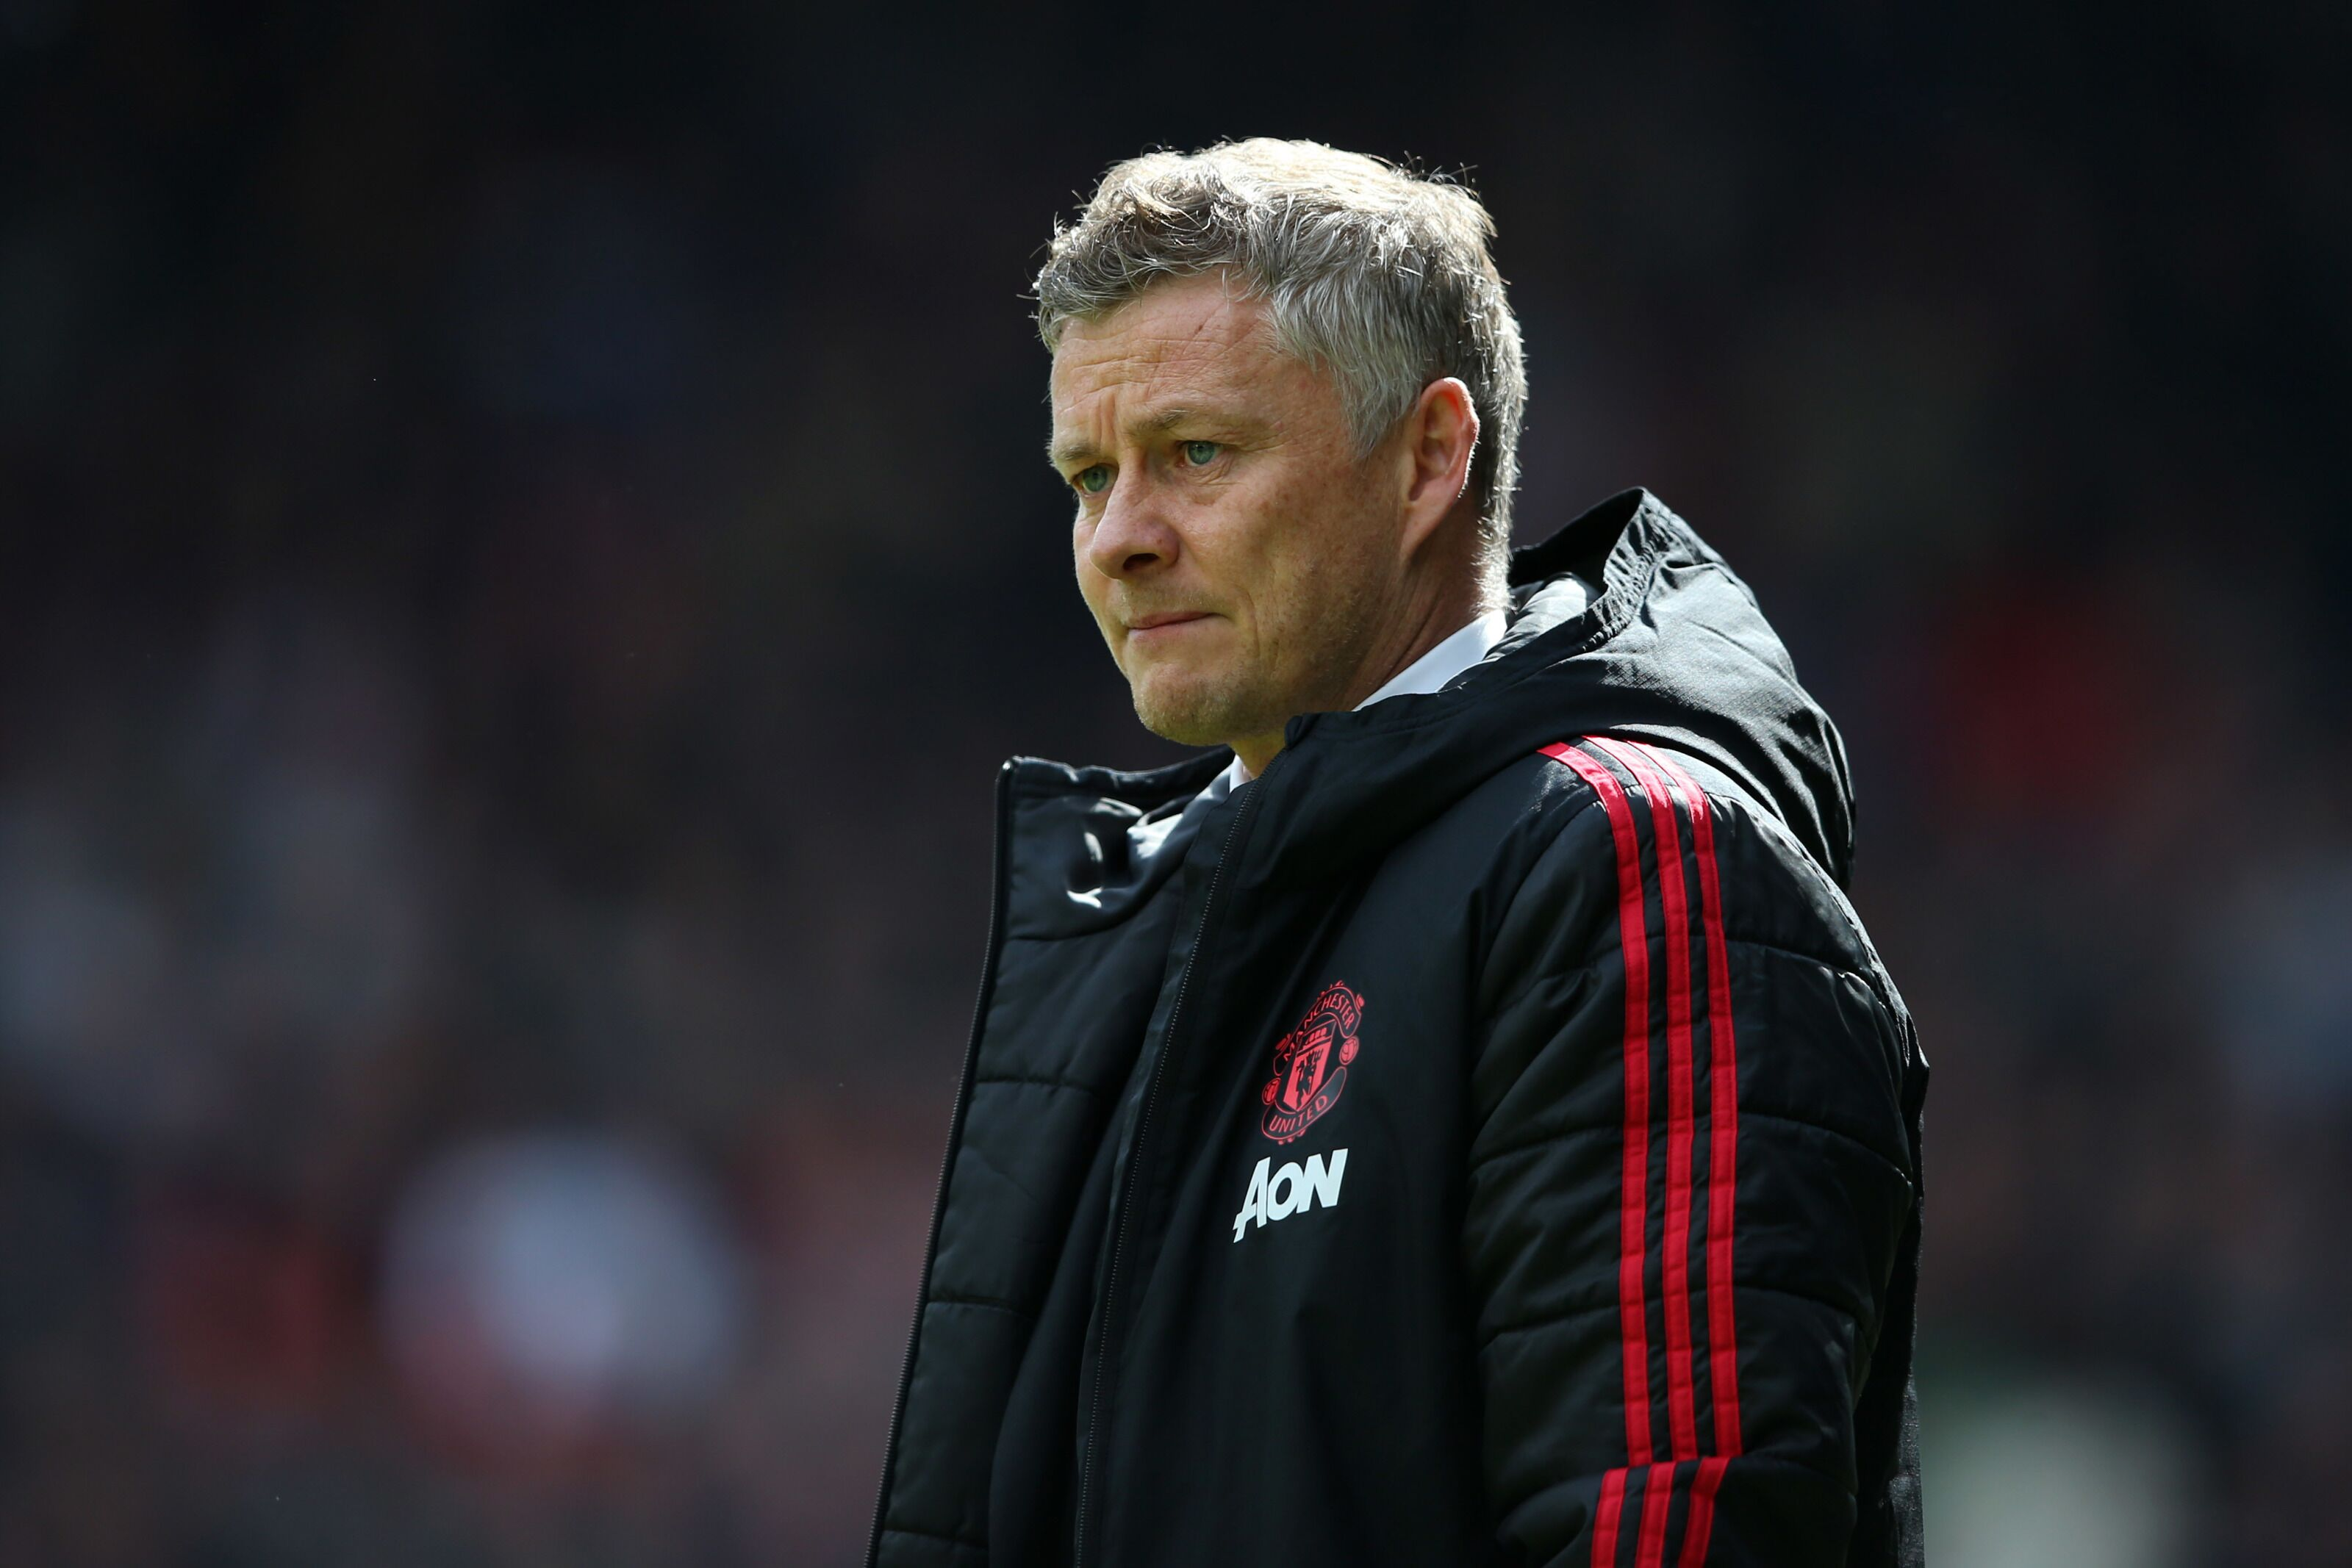 Ole Gunnar Solskjaer must find his system at Manchester United before the start of next season